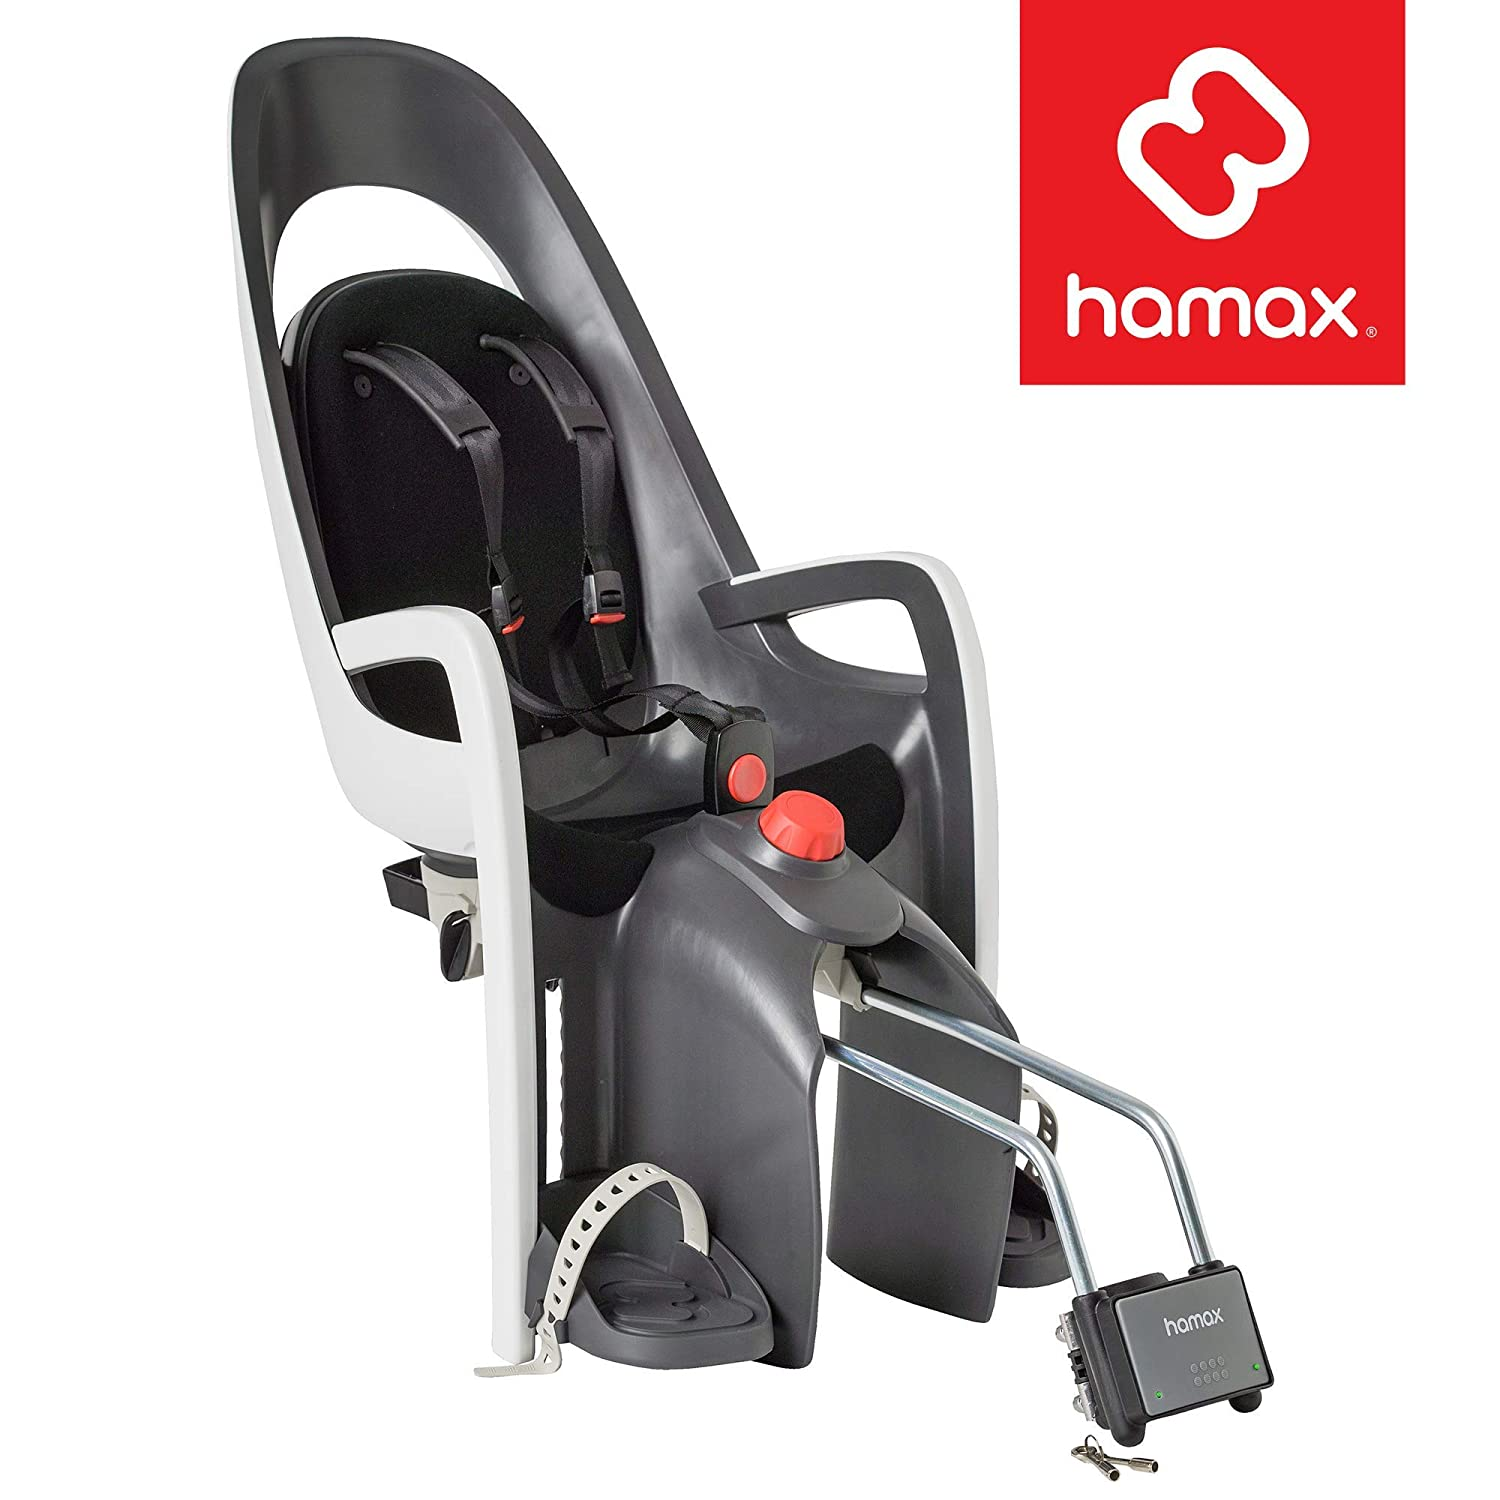 Hamax Caress Child Bike Seat, Ultra-Shock Absorbing Frame or Rack Rear Mount, Adjustable to Fit Kids Baby Through Toddler 9 mo – 48.5 lb. 35-Year Award Winning European Brand.